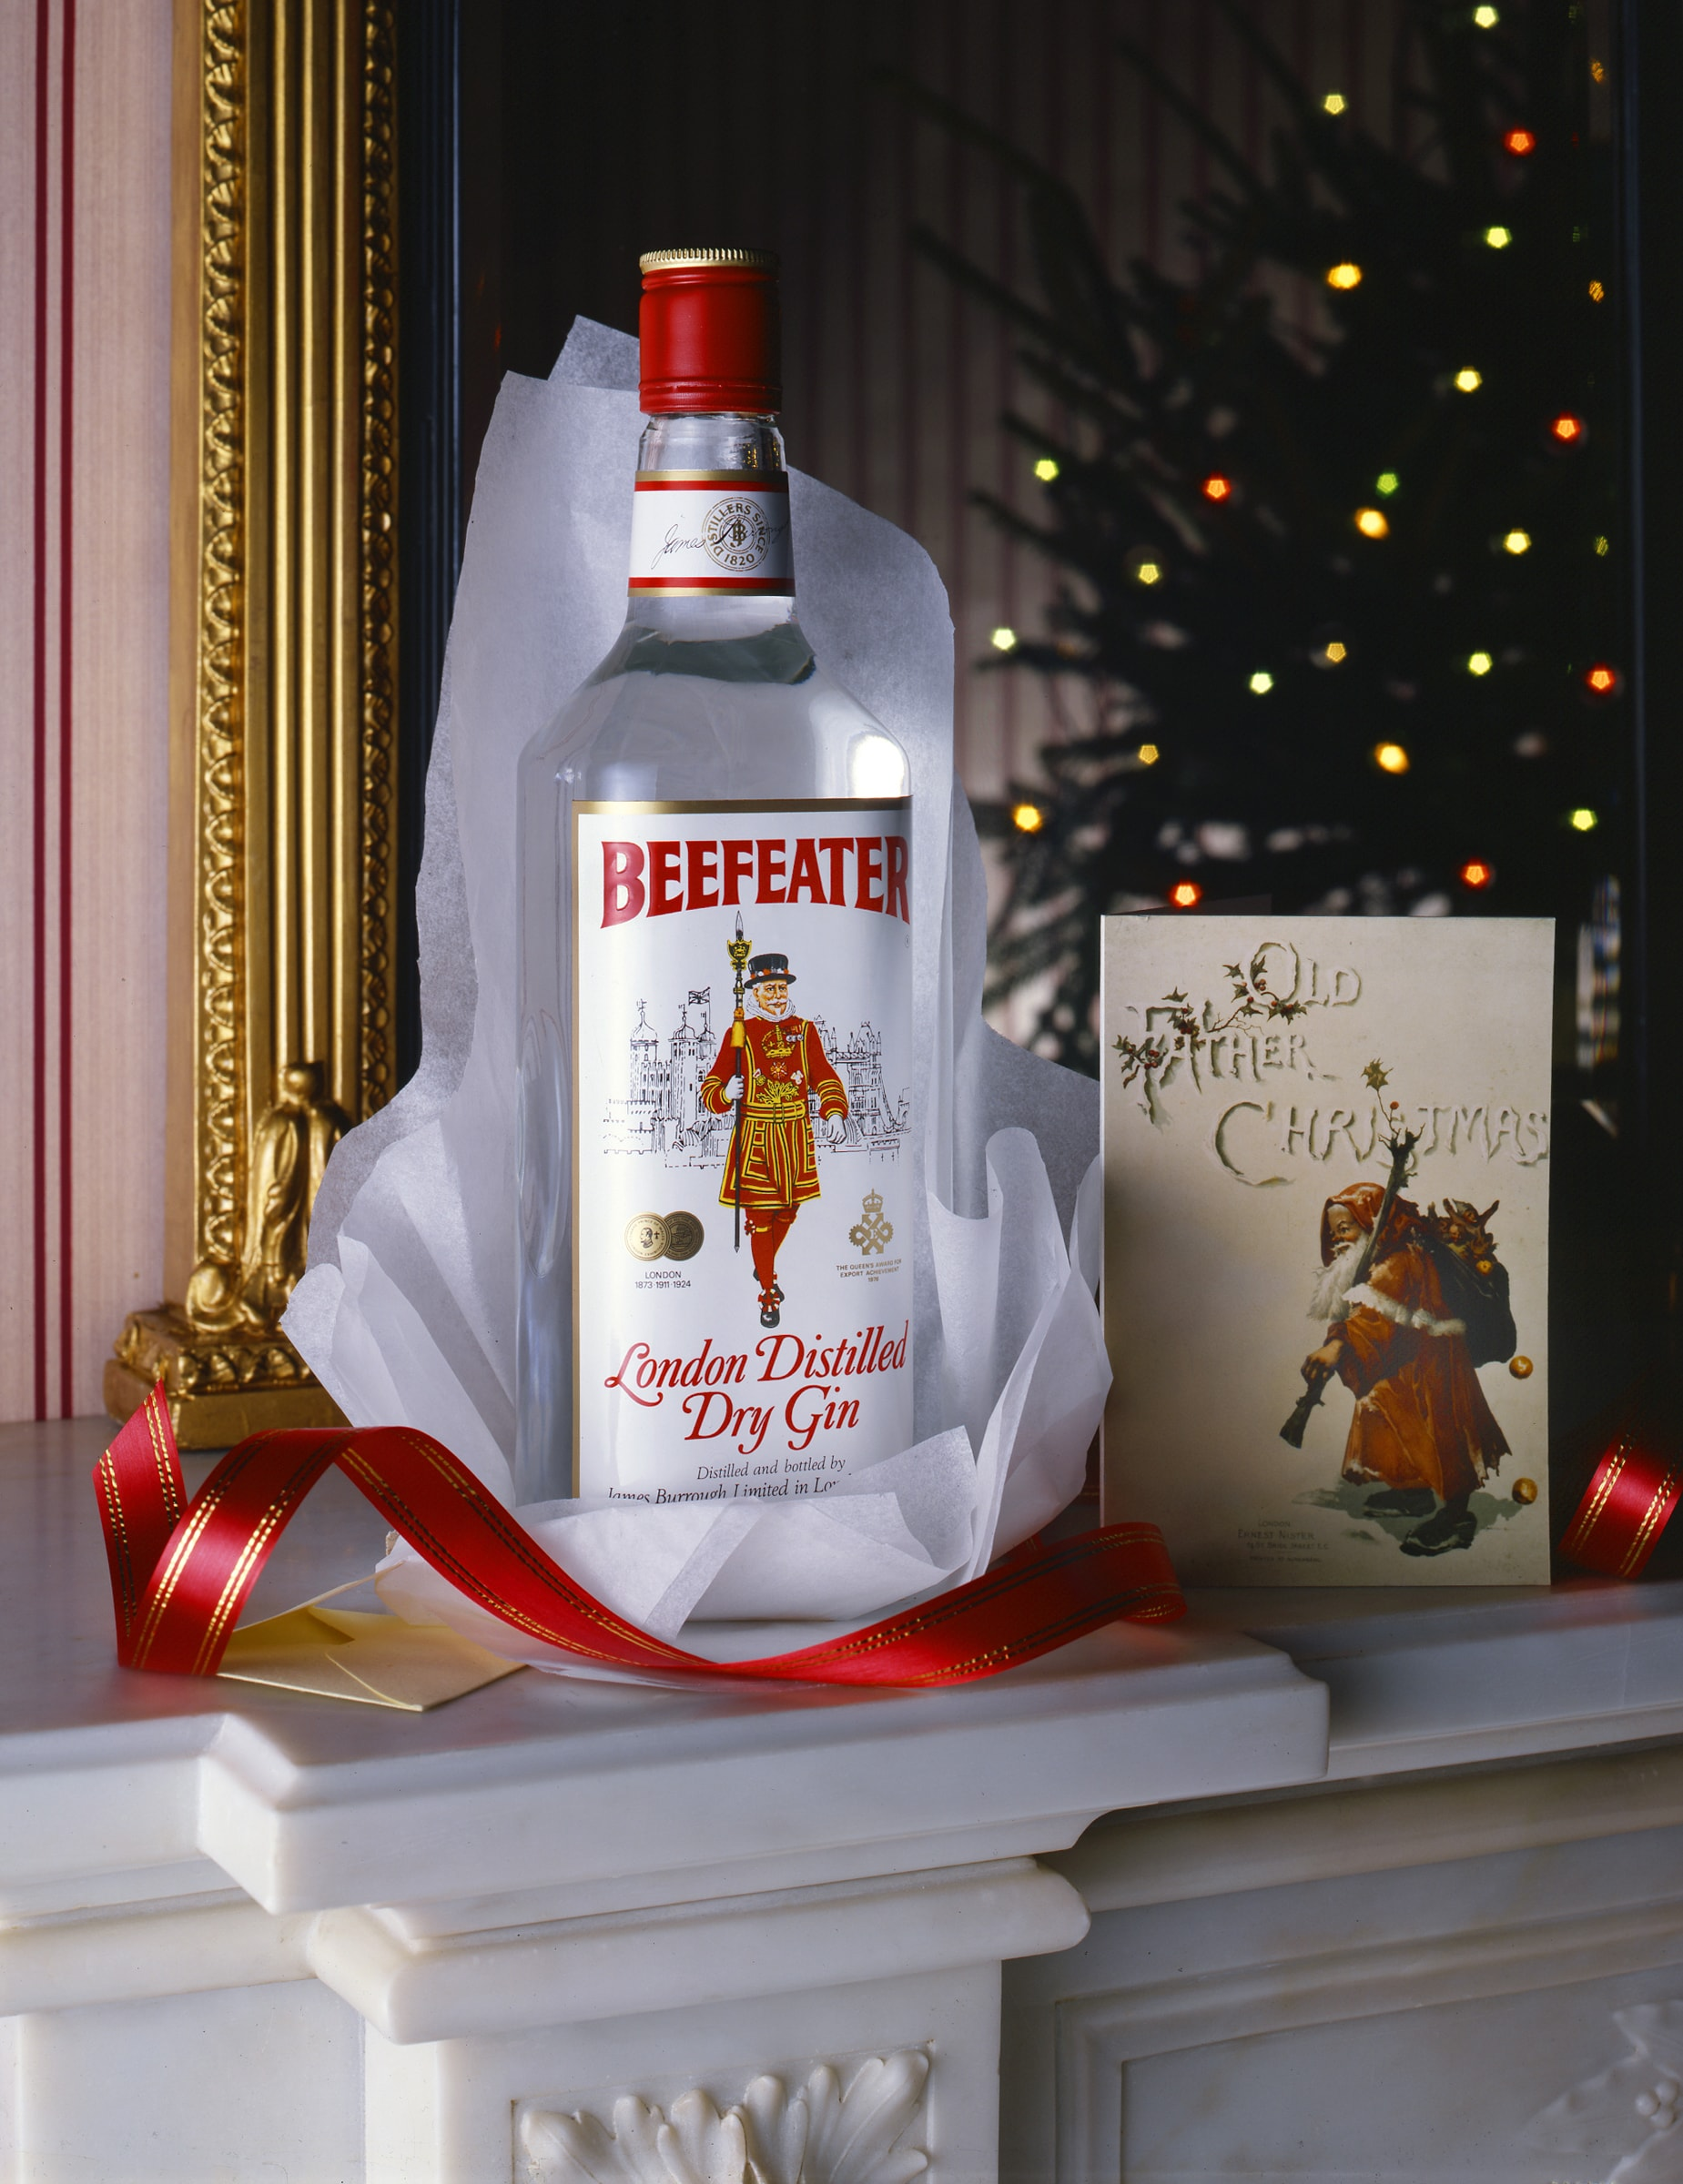 Beefeater Gin Christmas by Paul Bussell